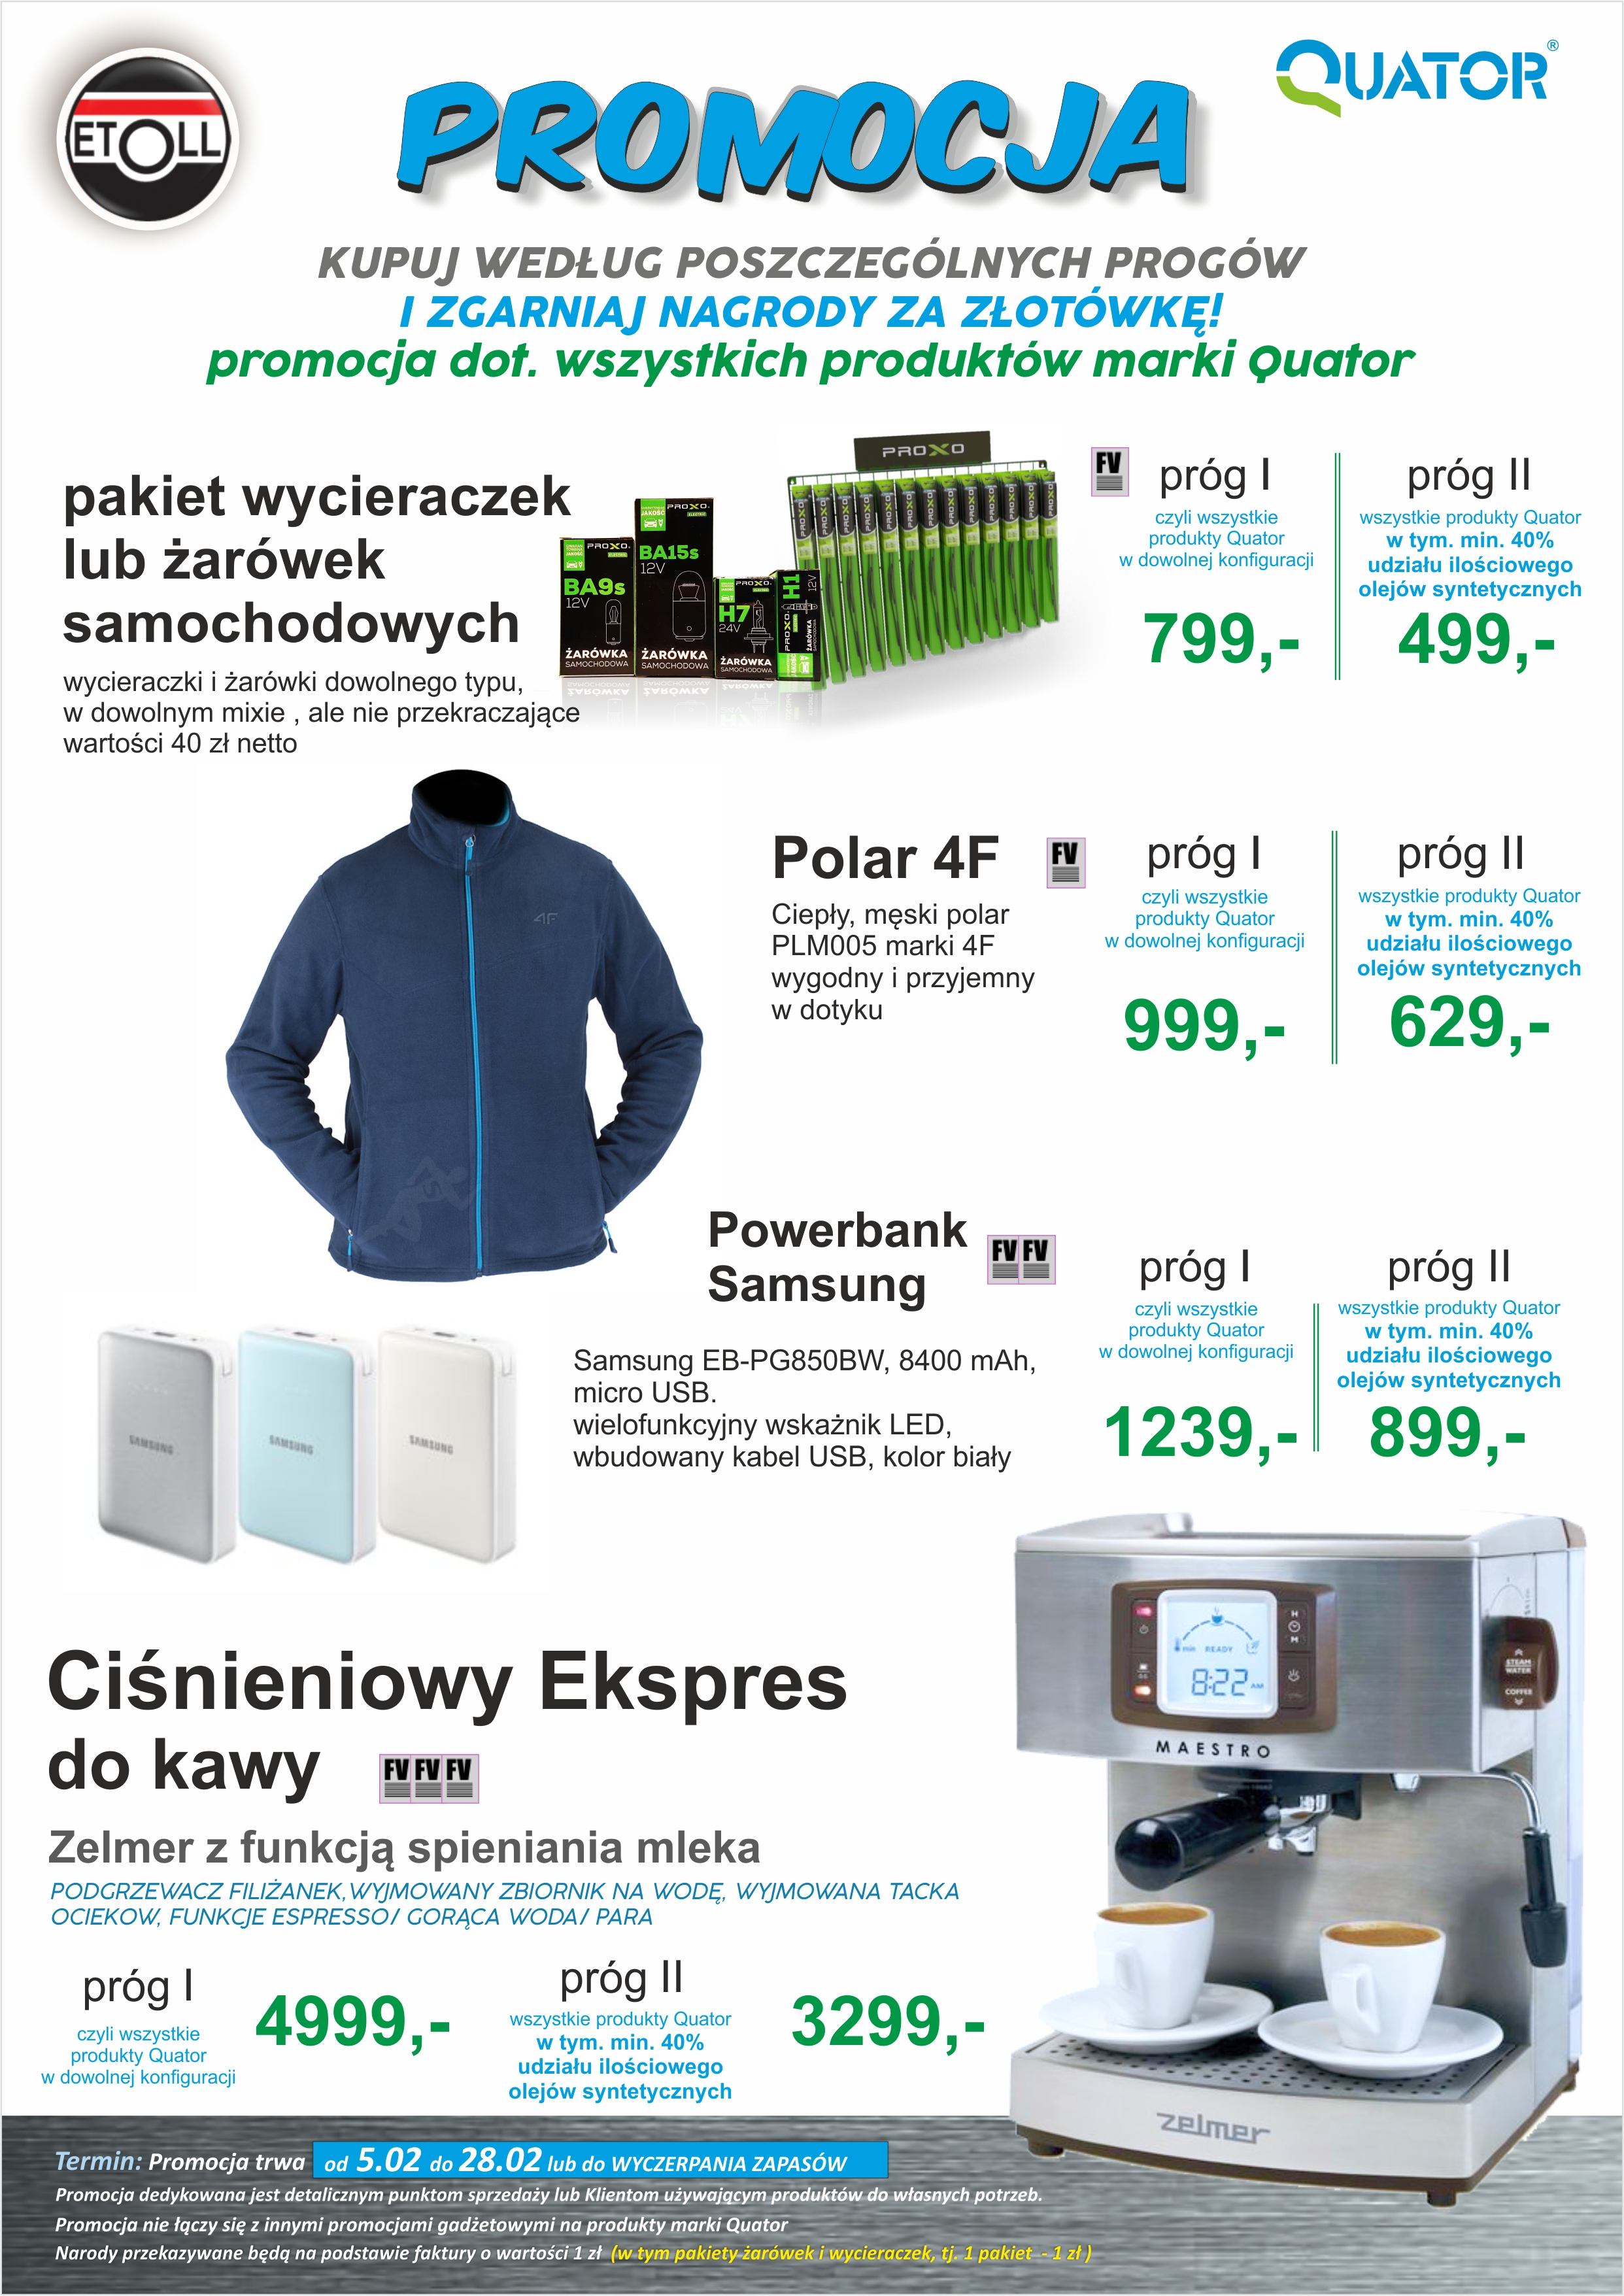 promocja olej quator etoll polary power bank